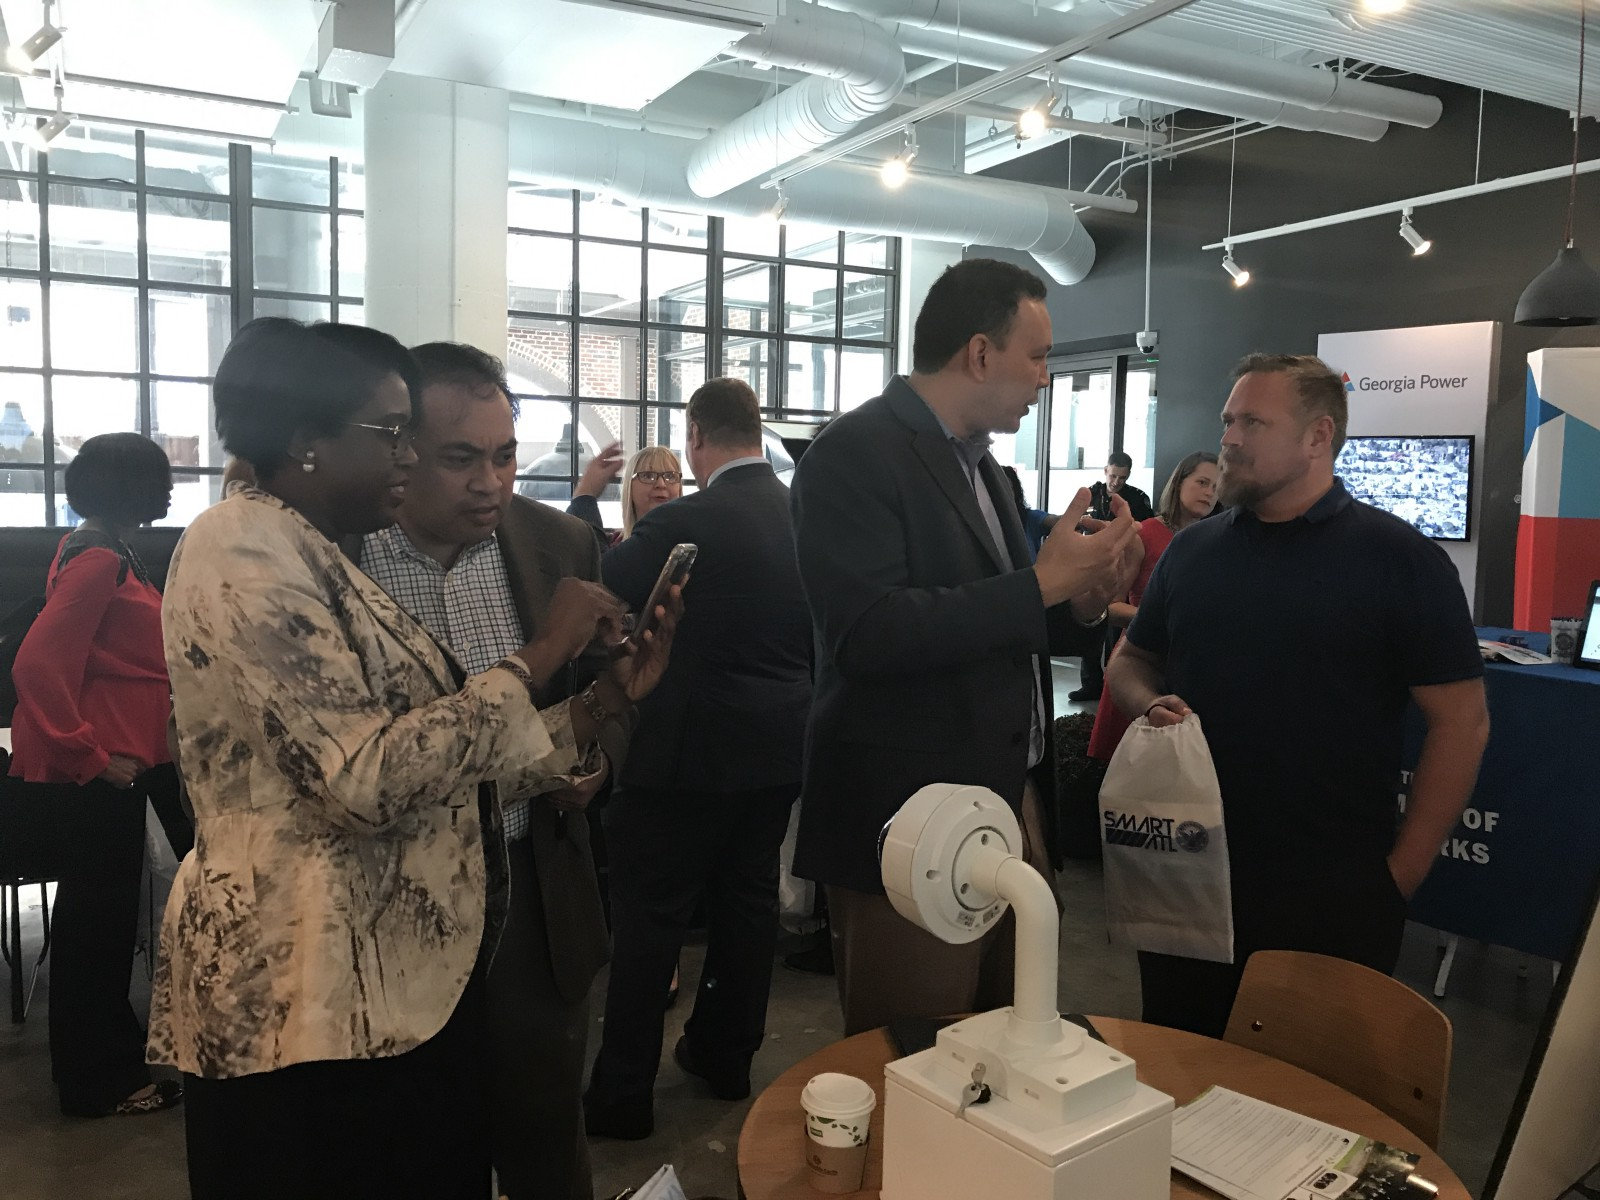 Attendees interact with Atlanta smart cities projects